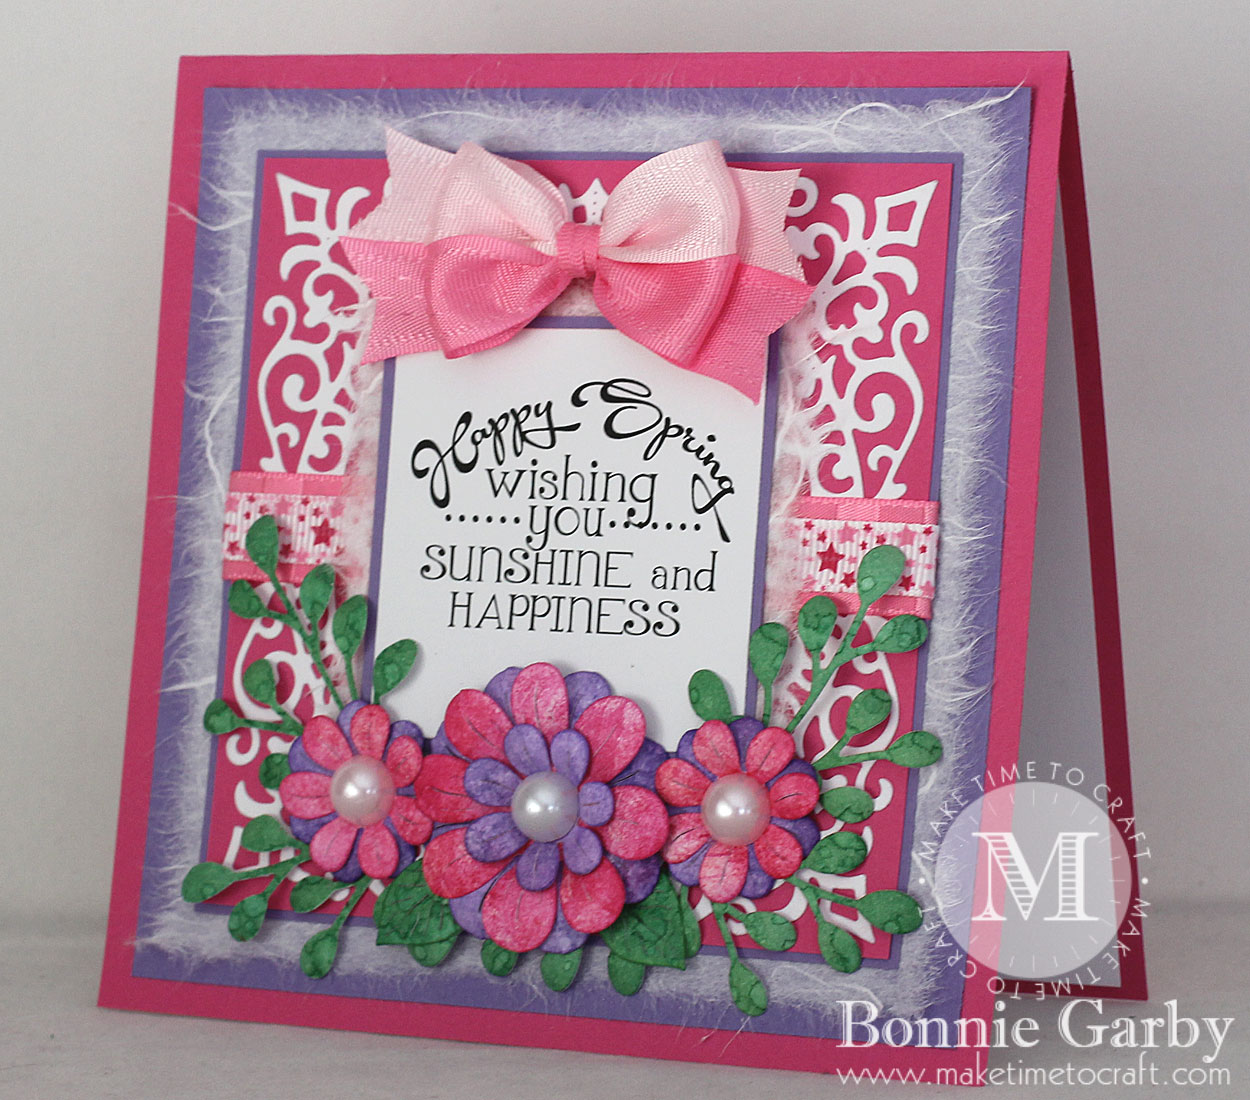 Cheery Lynn Designs 3D Pop Up Dies New Release Blog Hop